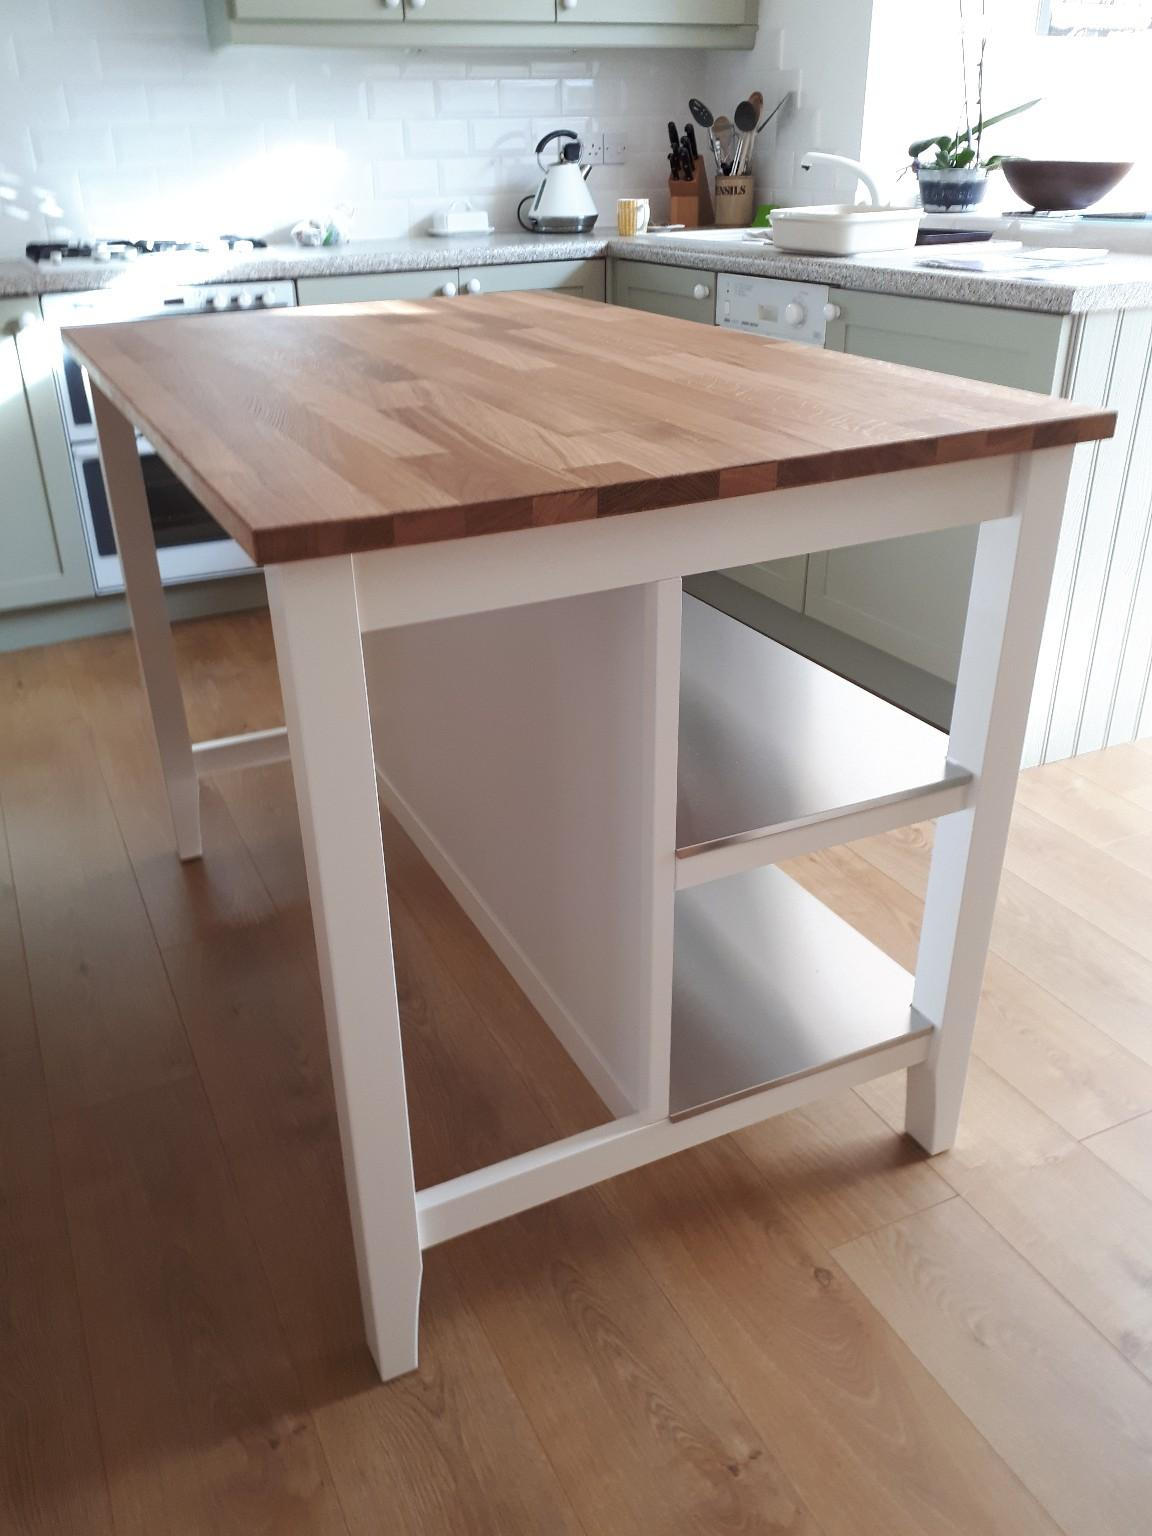 Ikea Stenstorp Kitchen Island In Ch63 Wirral For 163 200 00